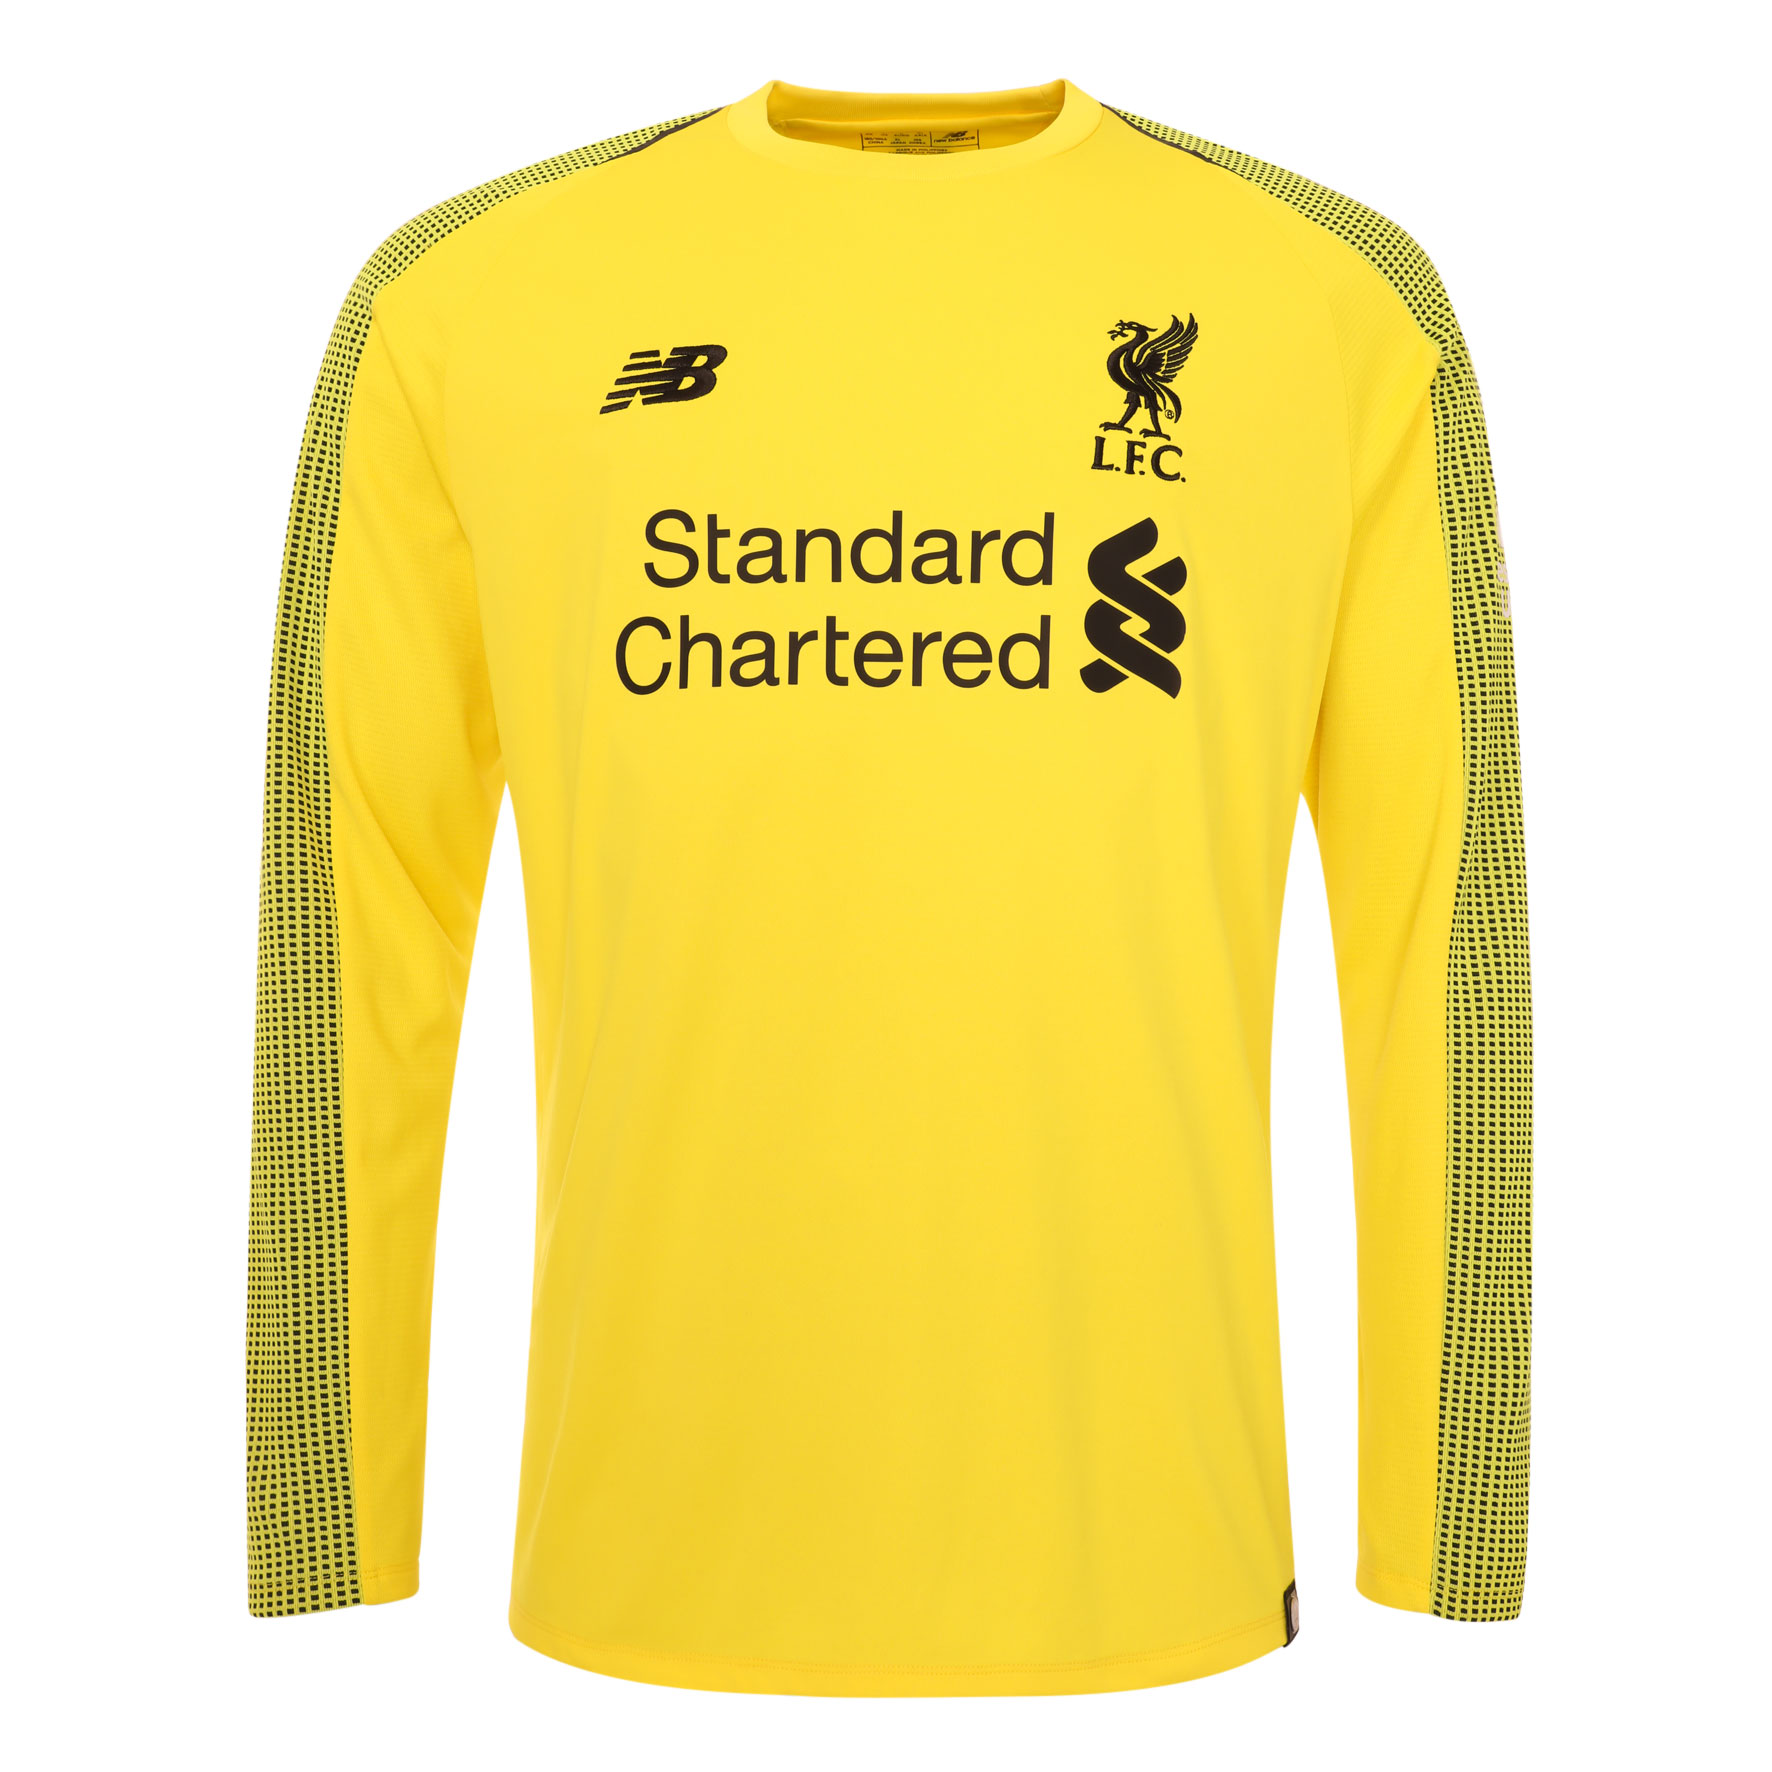 dee9c9948 Liverpool have launched their new home kit for next season and it s ...